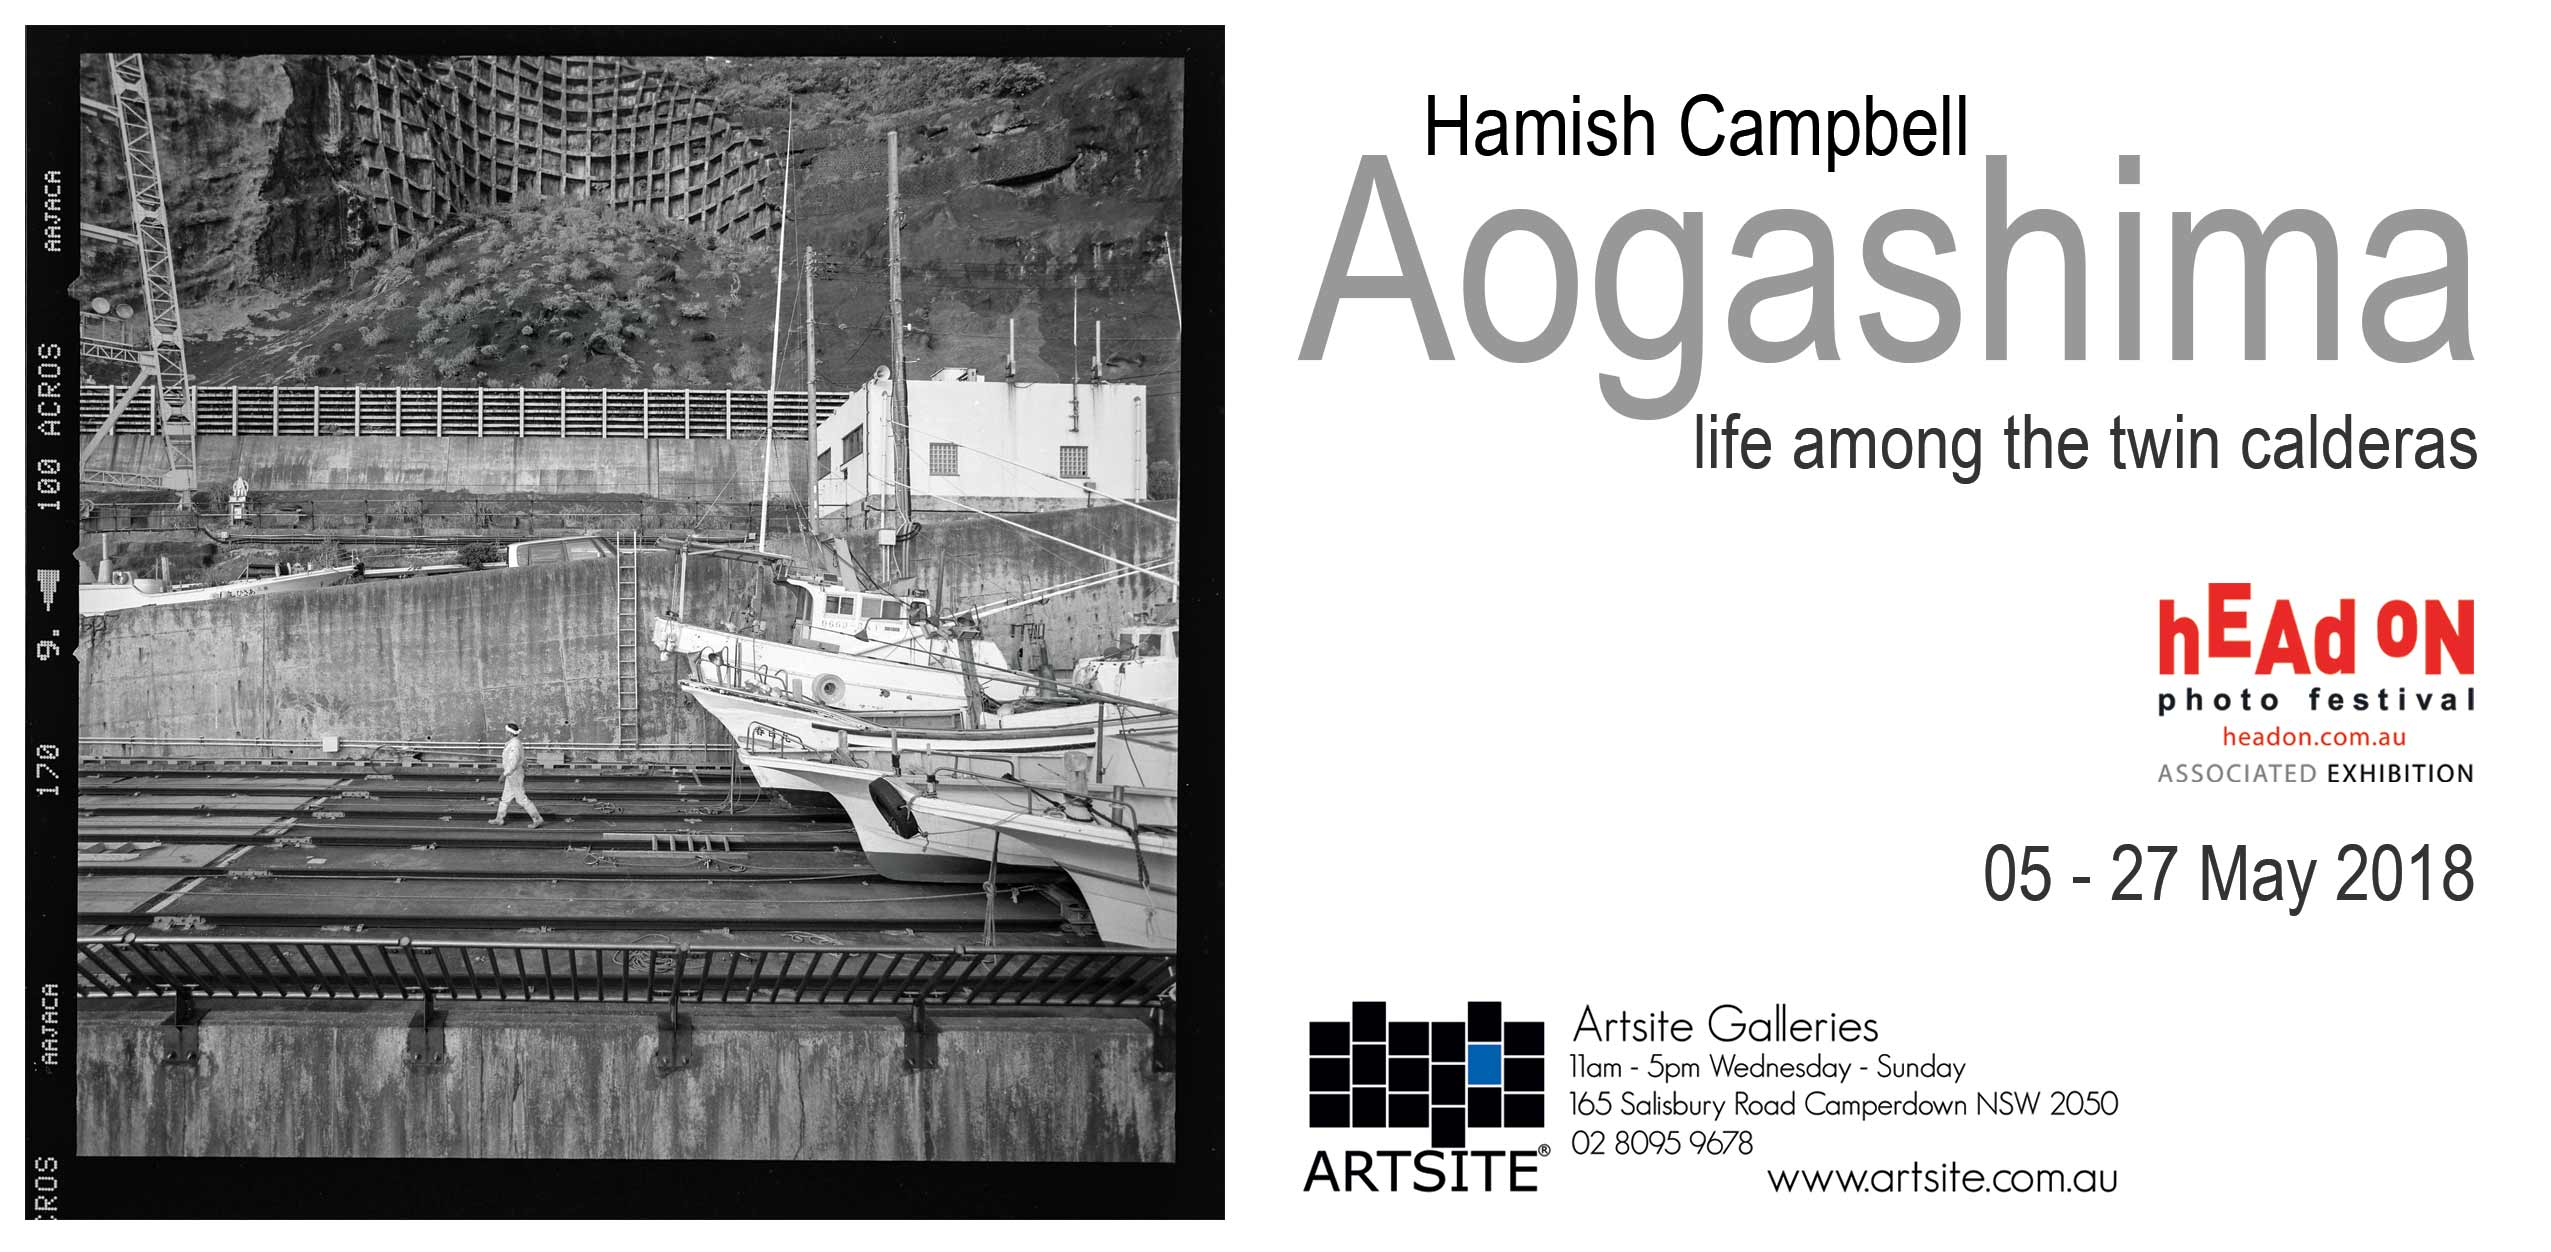 Hamish Campbell's Solo Exhibition at Artsite Galleries, Sydney May 2018